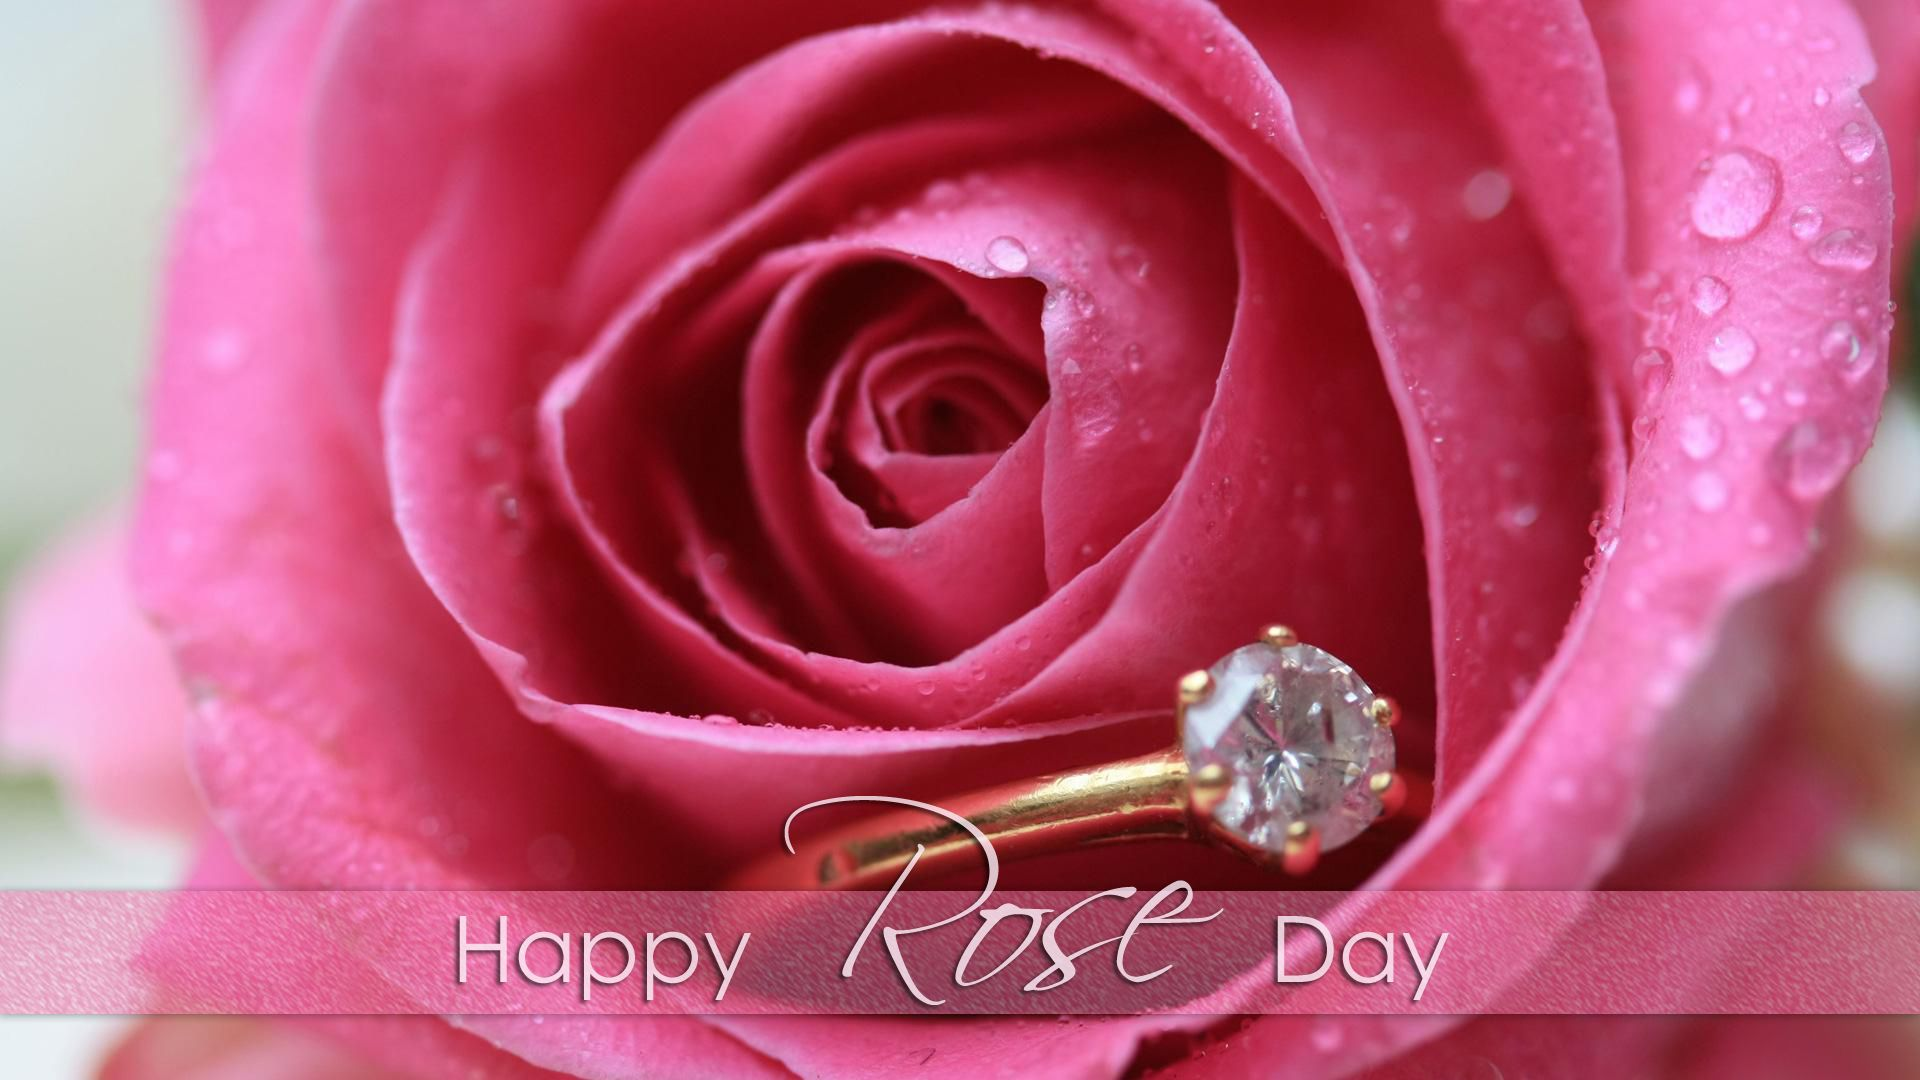 Rose Day Image for Whatsapp DP, Profile Wallpapers – Free Download